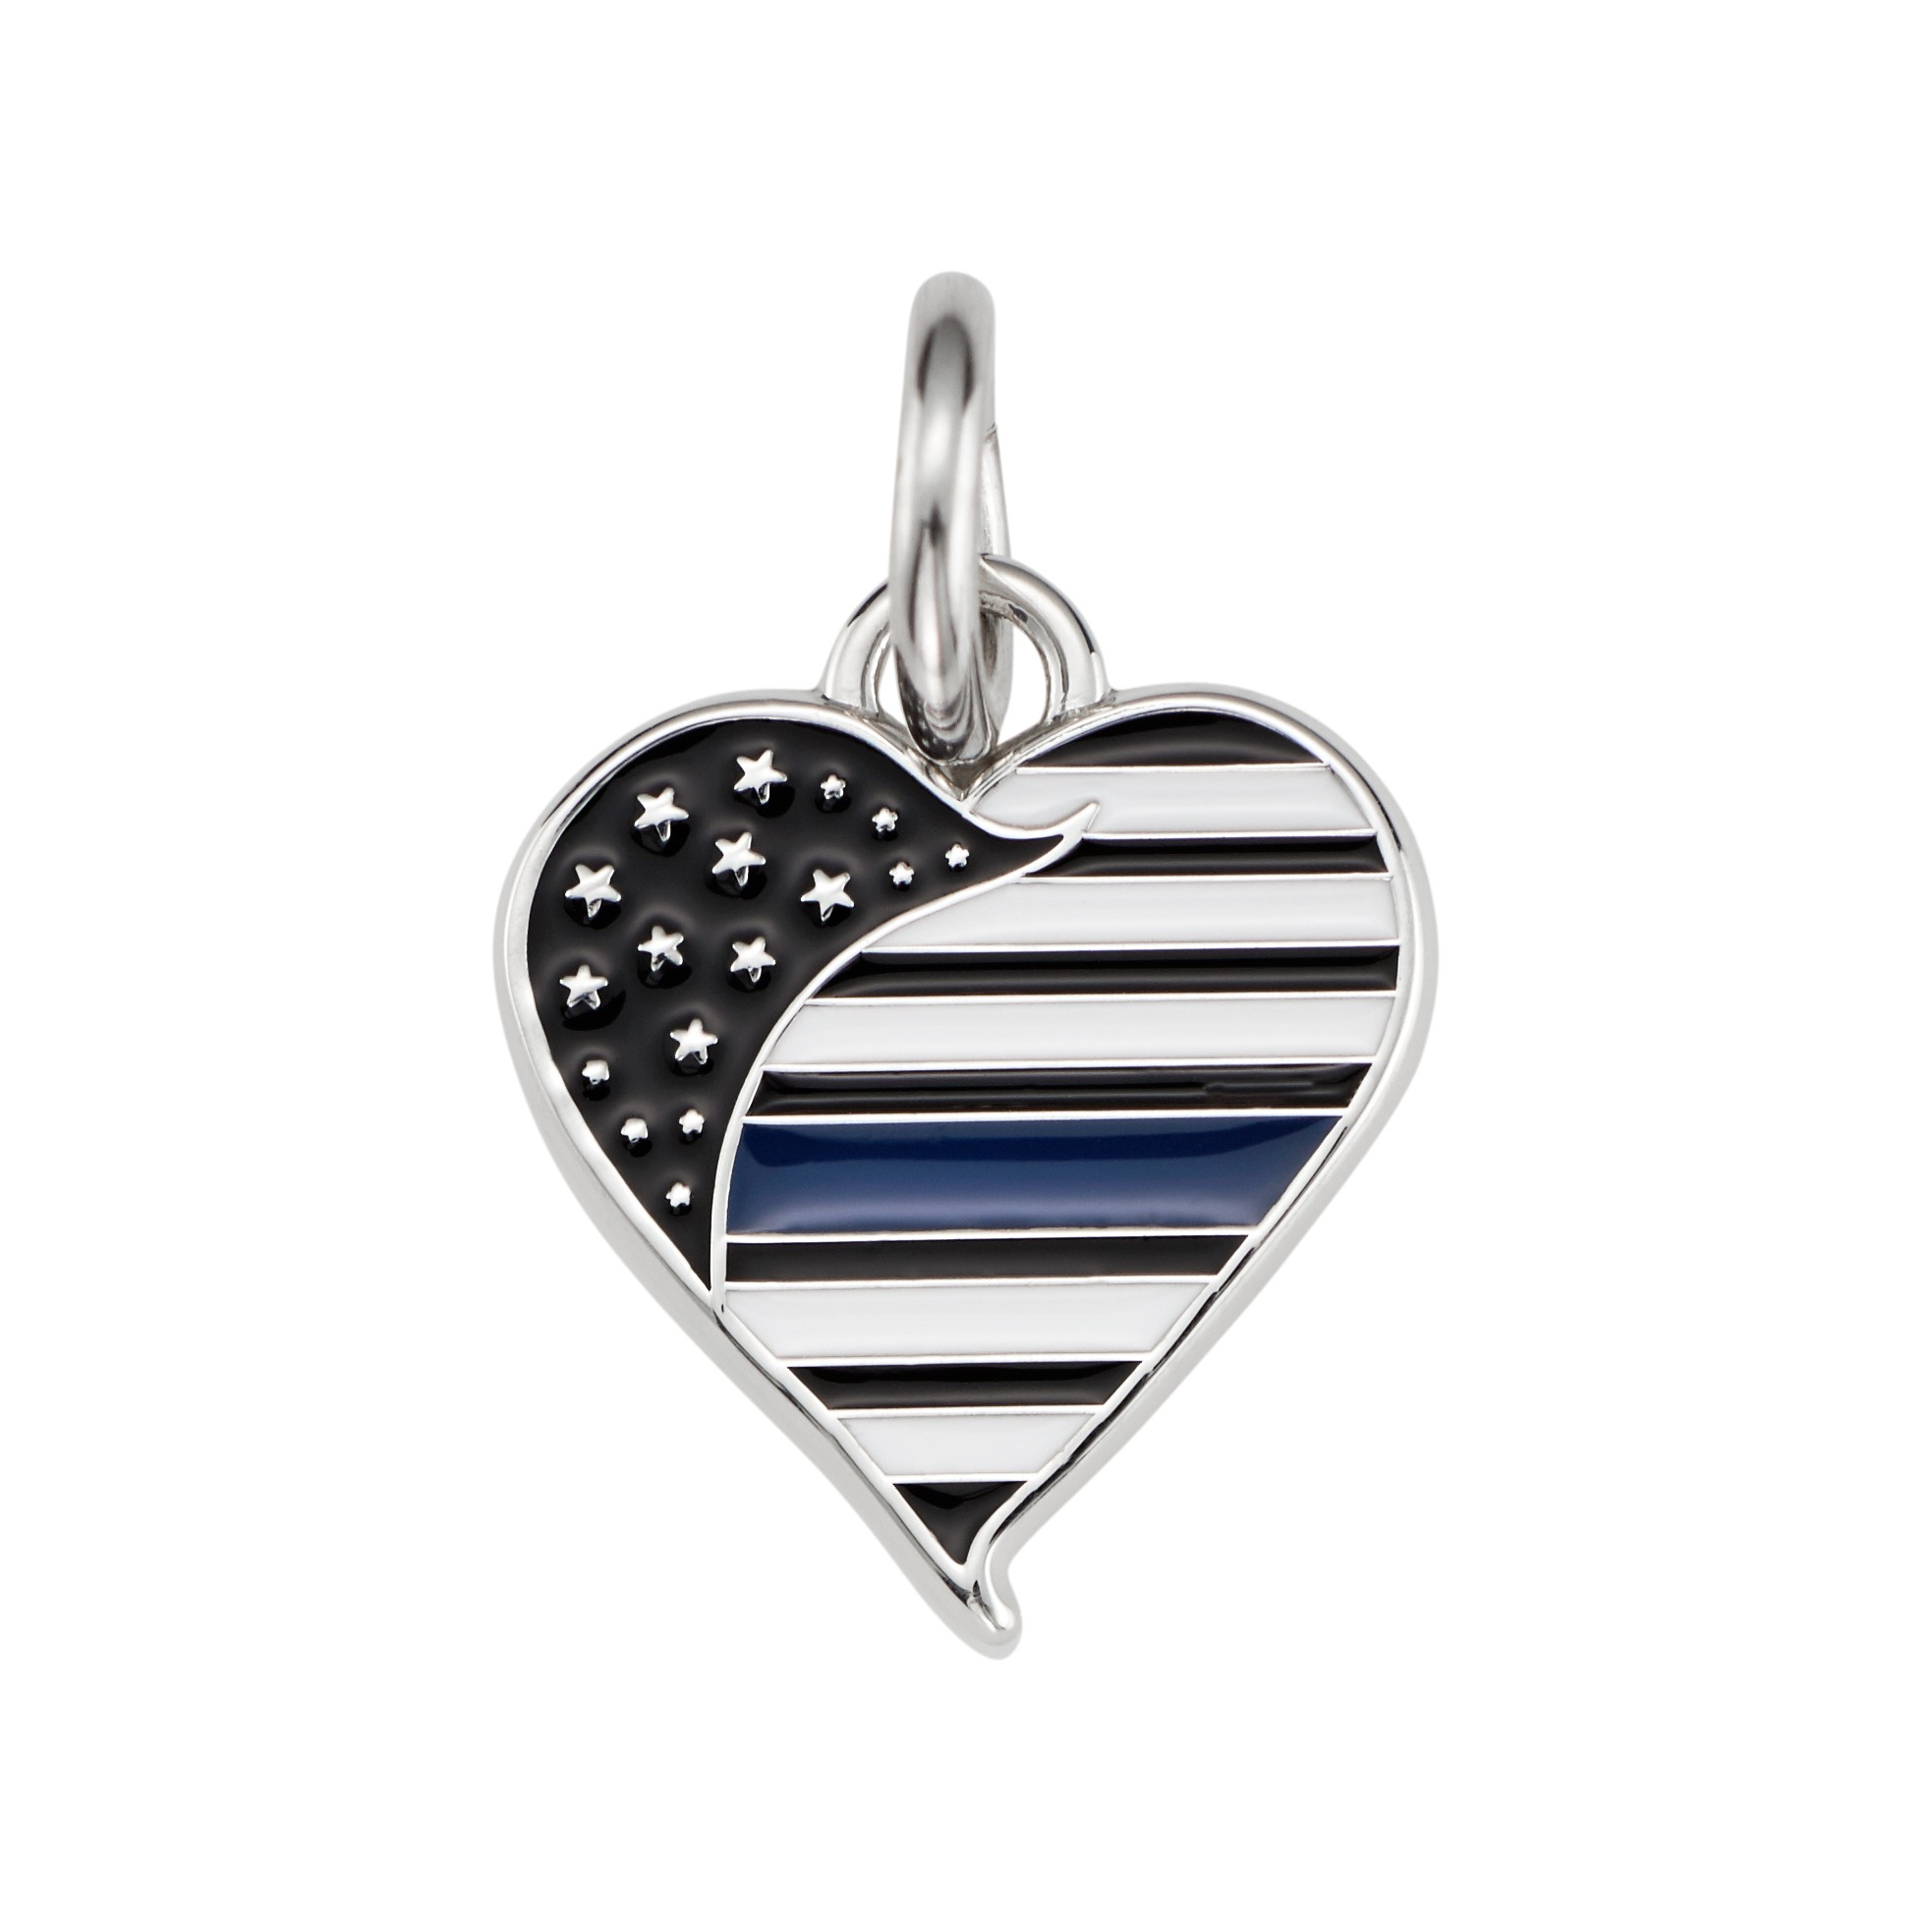 pendant tag home necklace officer badge uniqjewelrydesigns dog personalized police